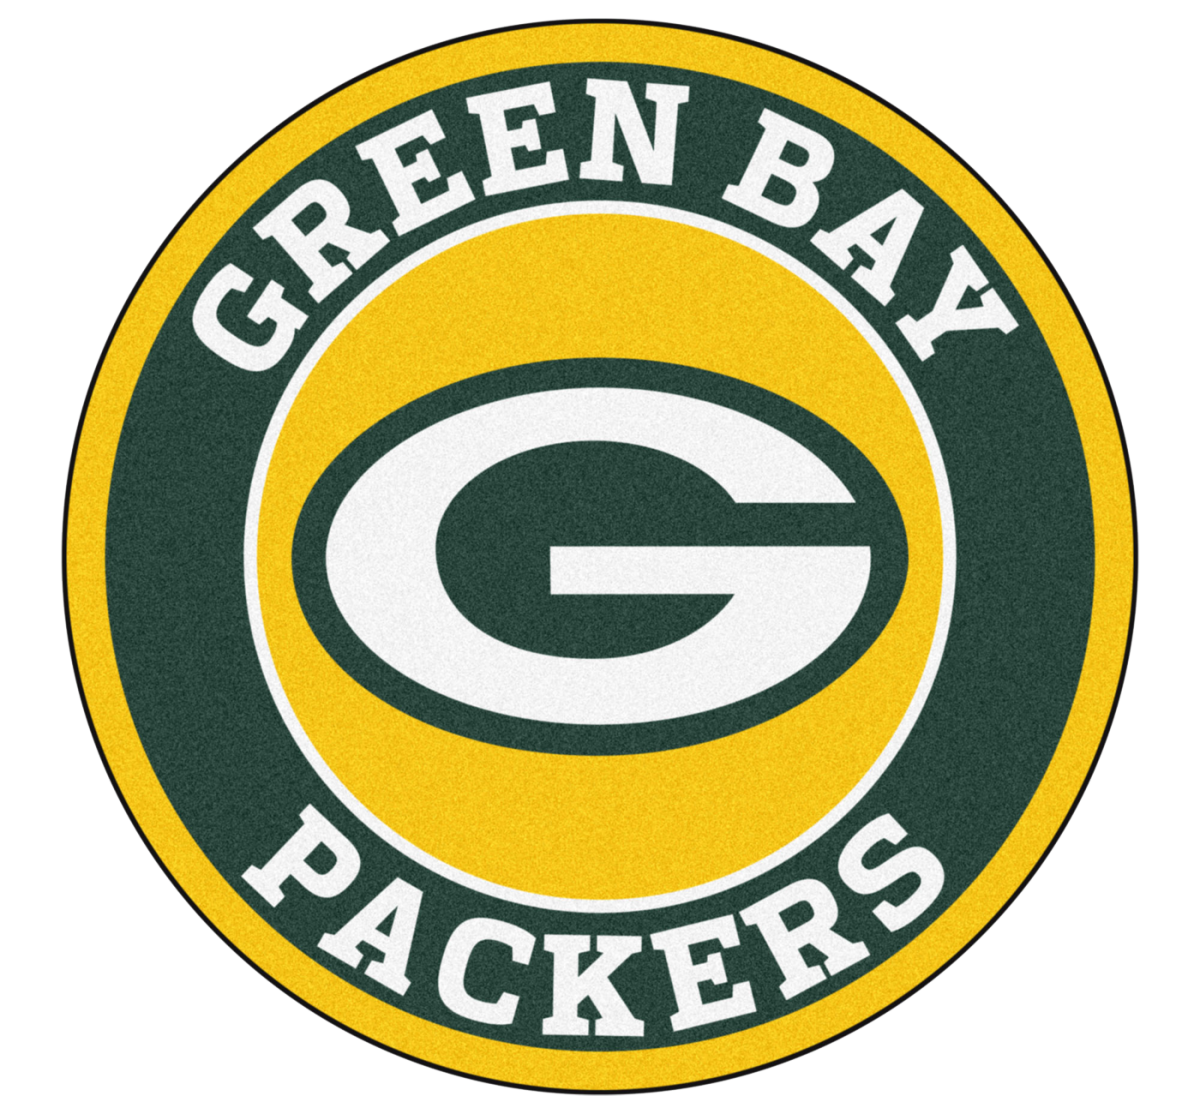 In 1961, the Green Bay Packers were the NFL champs.